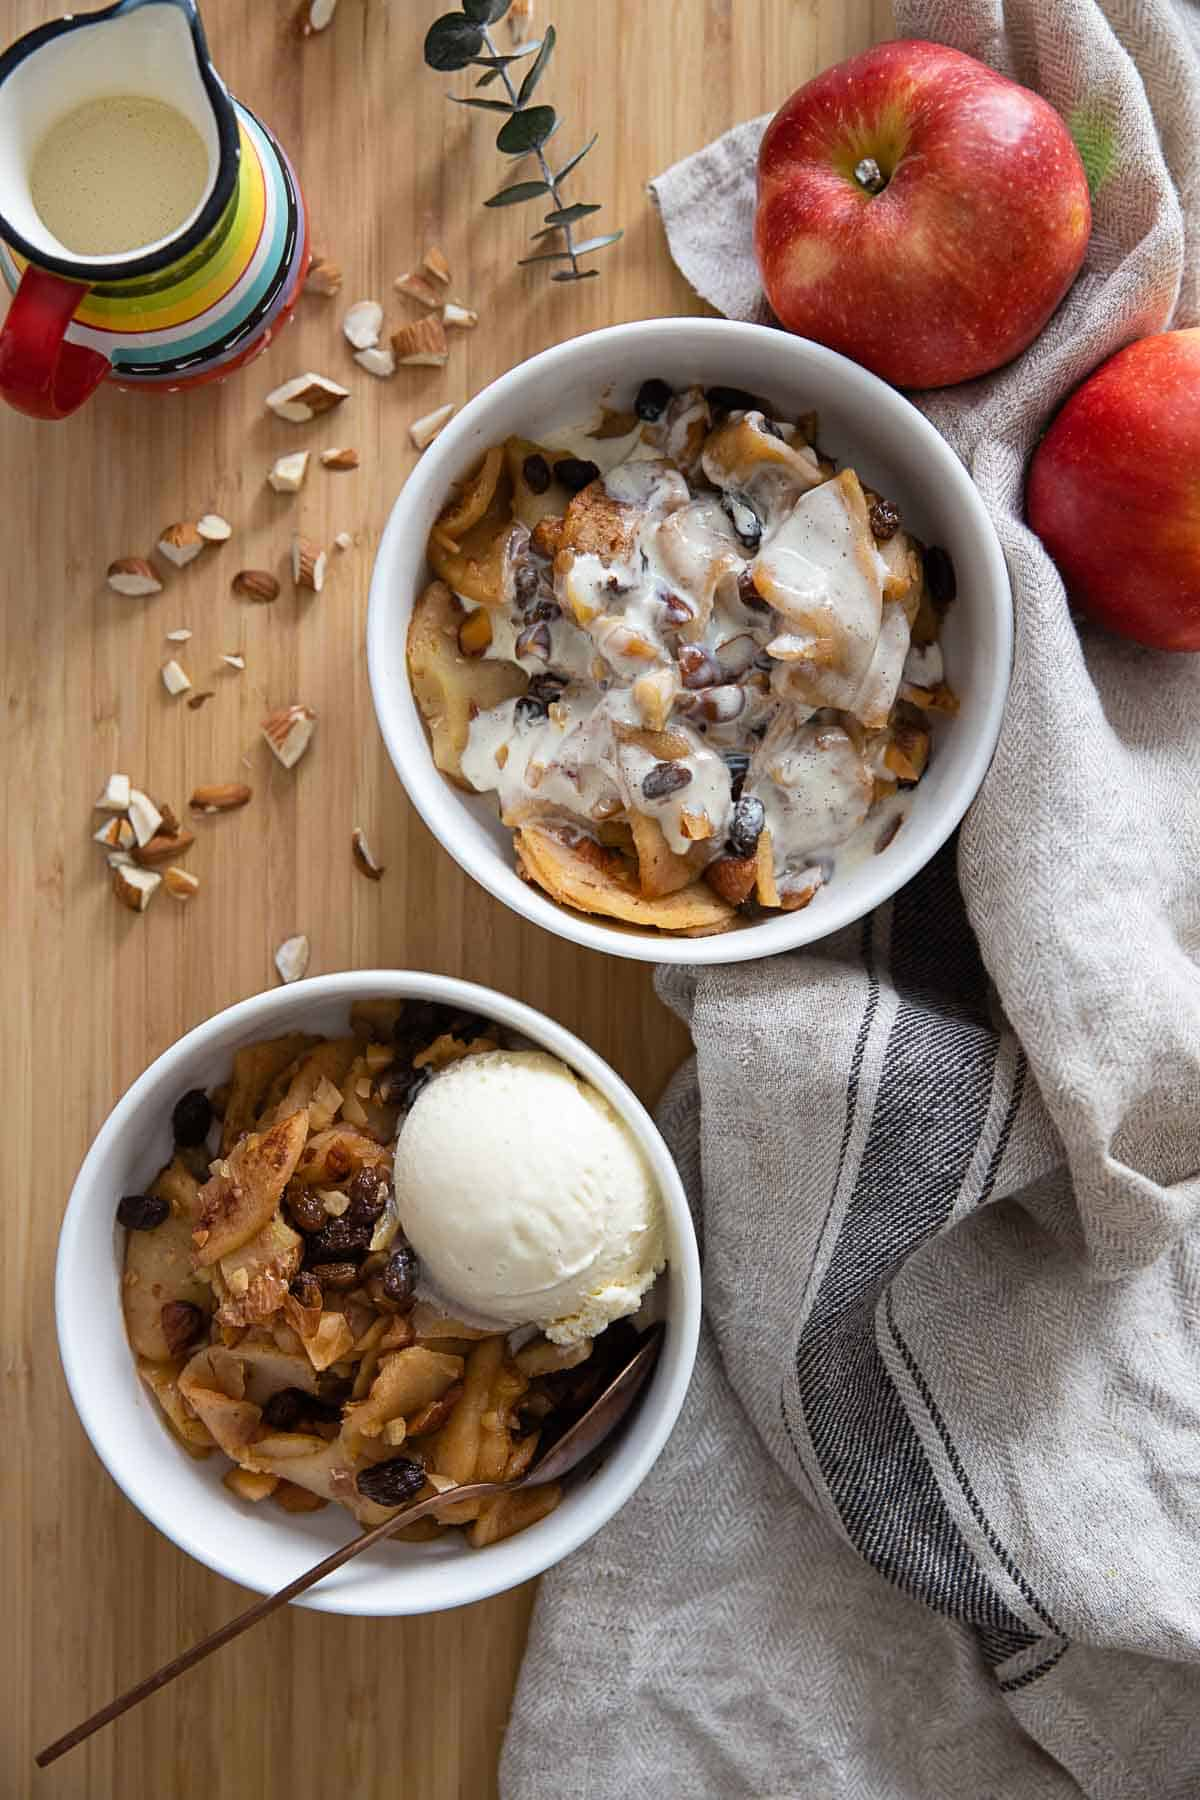 Two bowls of sliced baked apples one topped with custard the other topped with a scoop of vanilla ice cream.